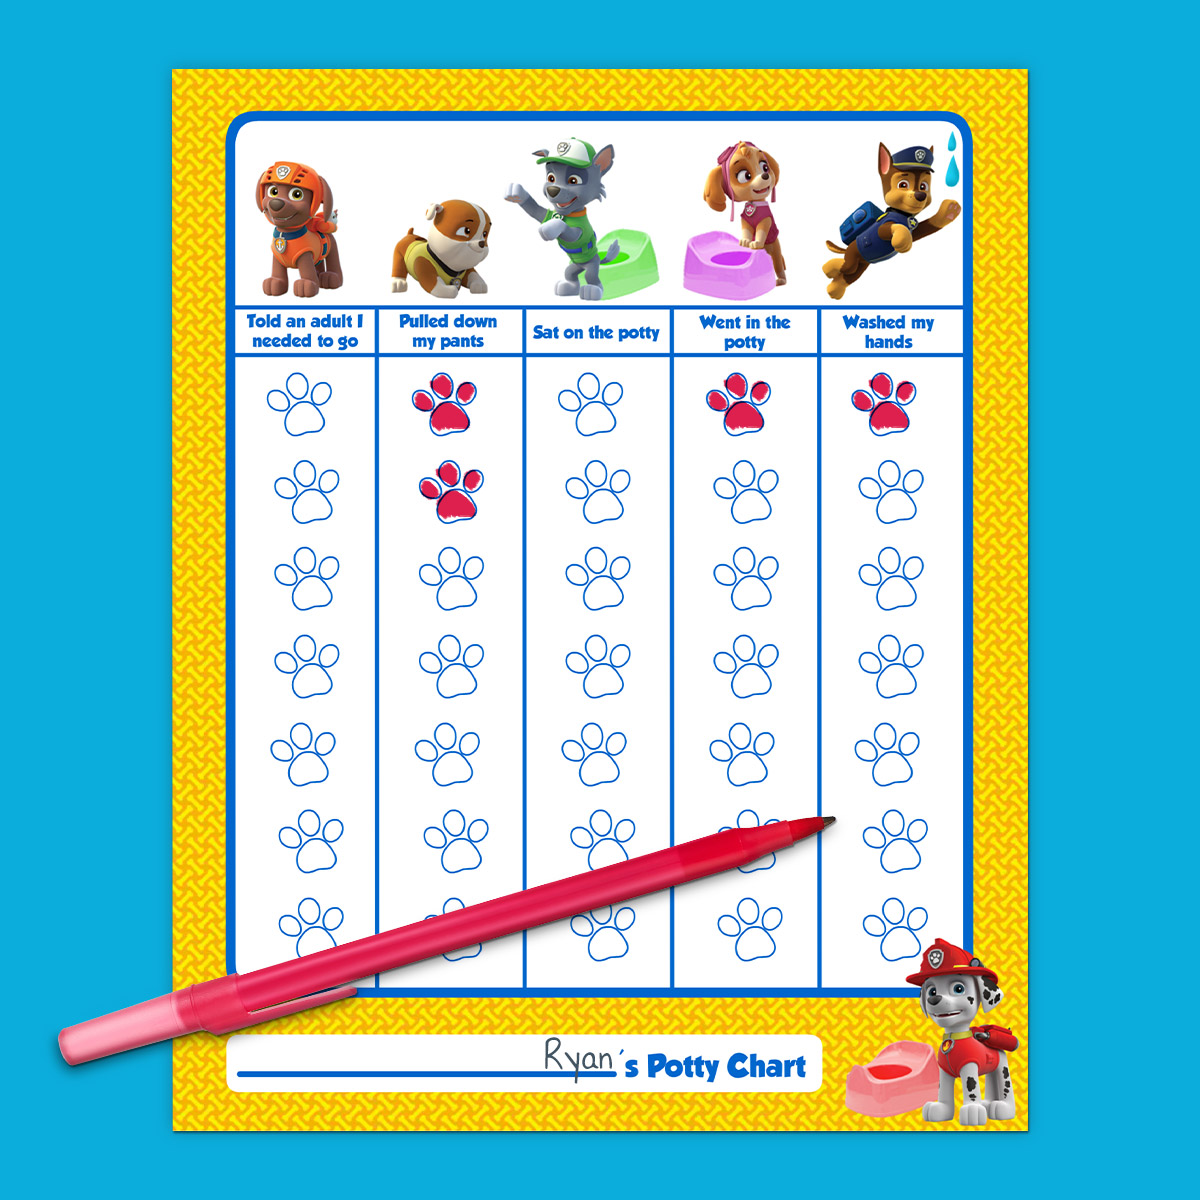 PAW Patrol Potty Training Chart | Nickelodeon Parents